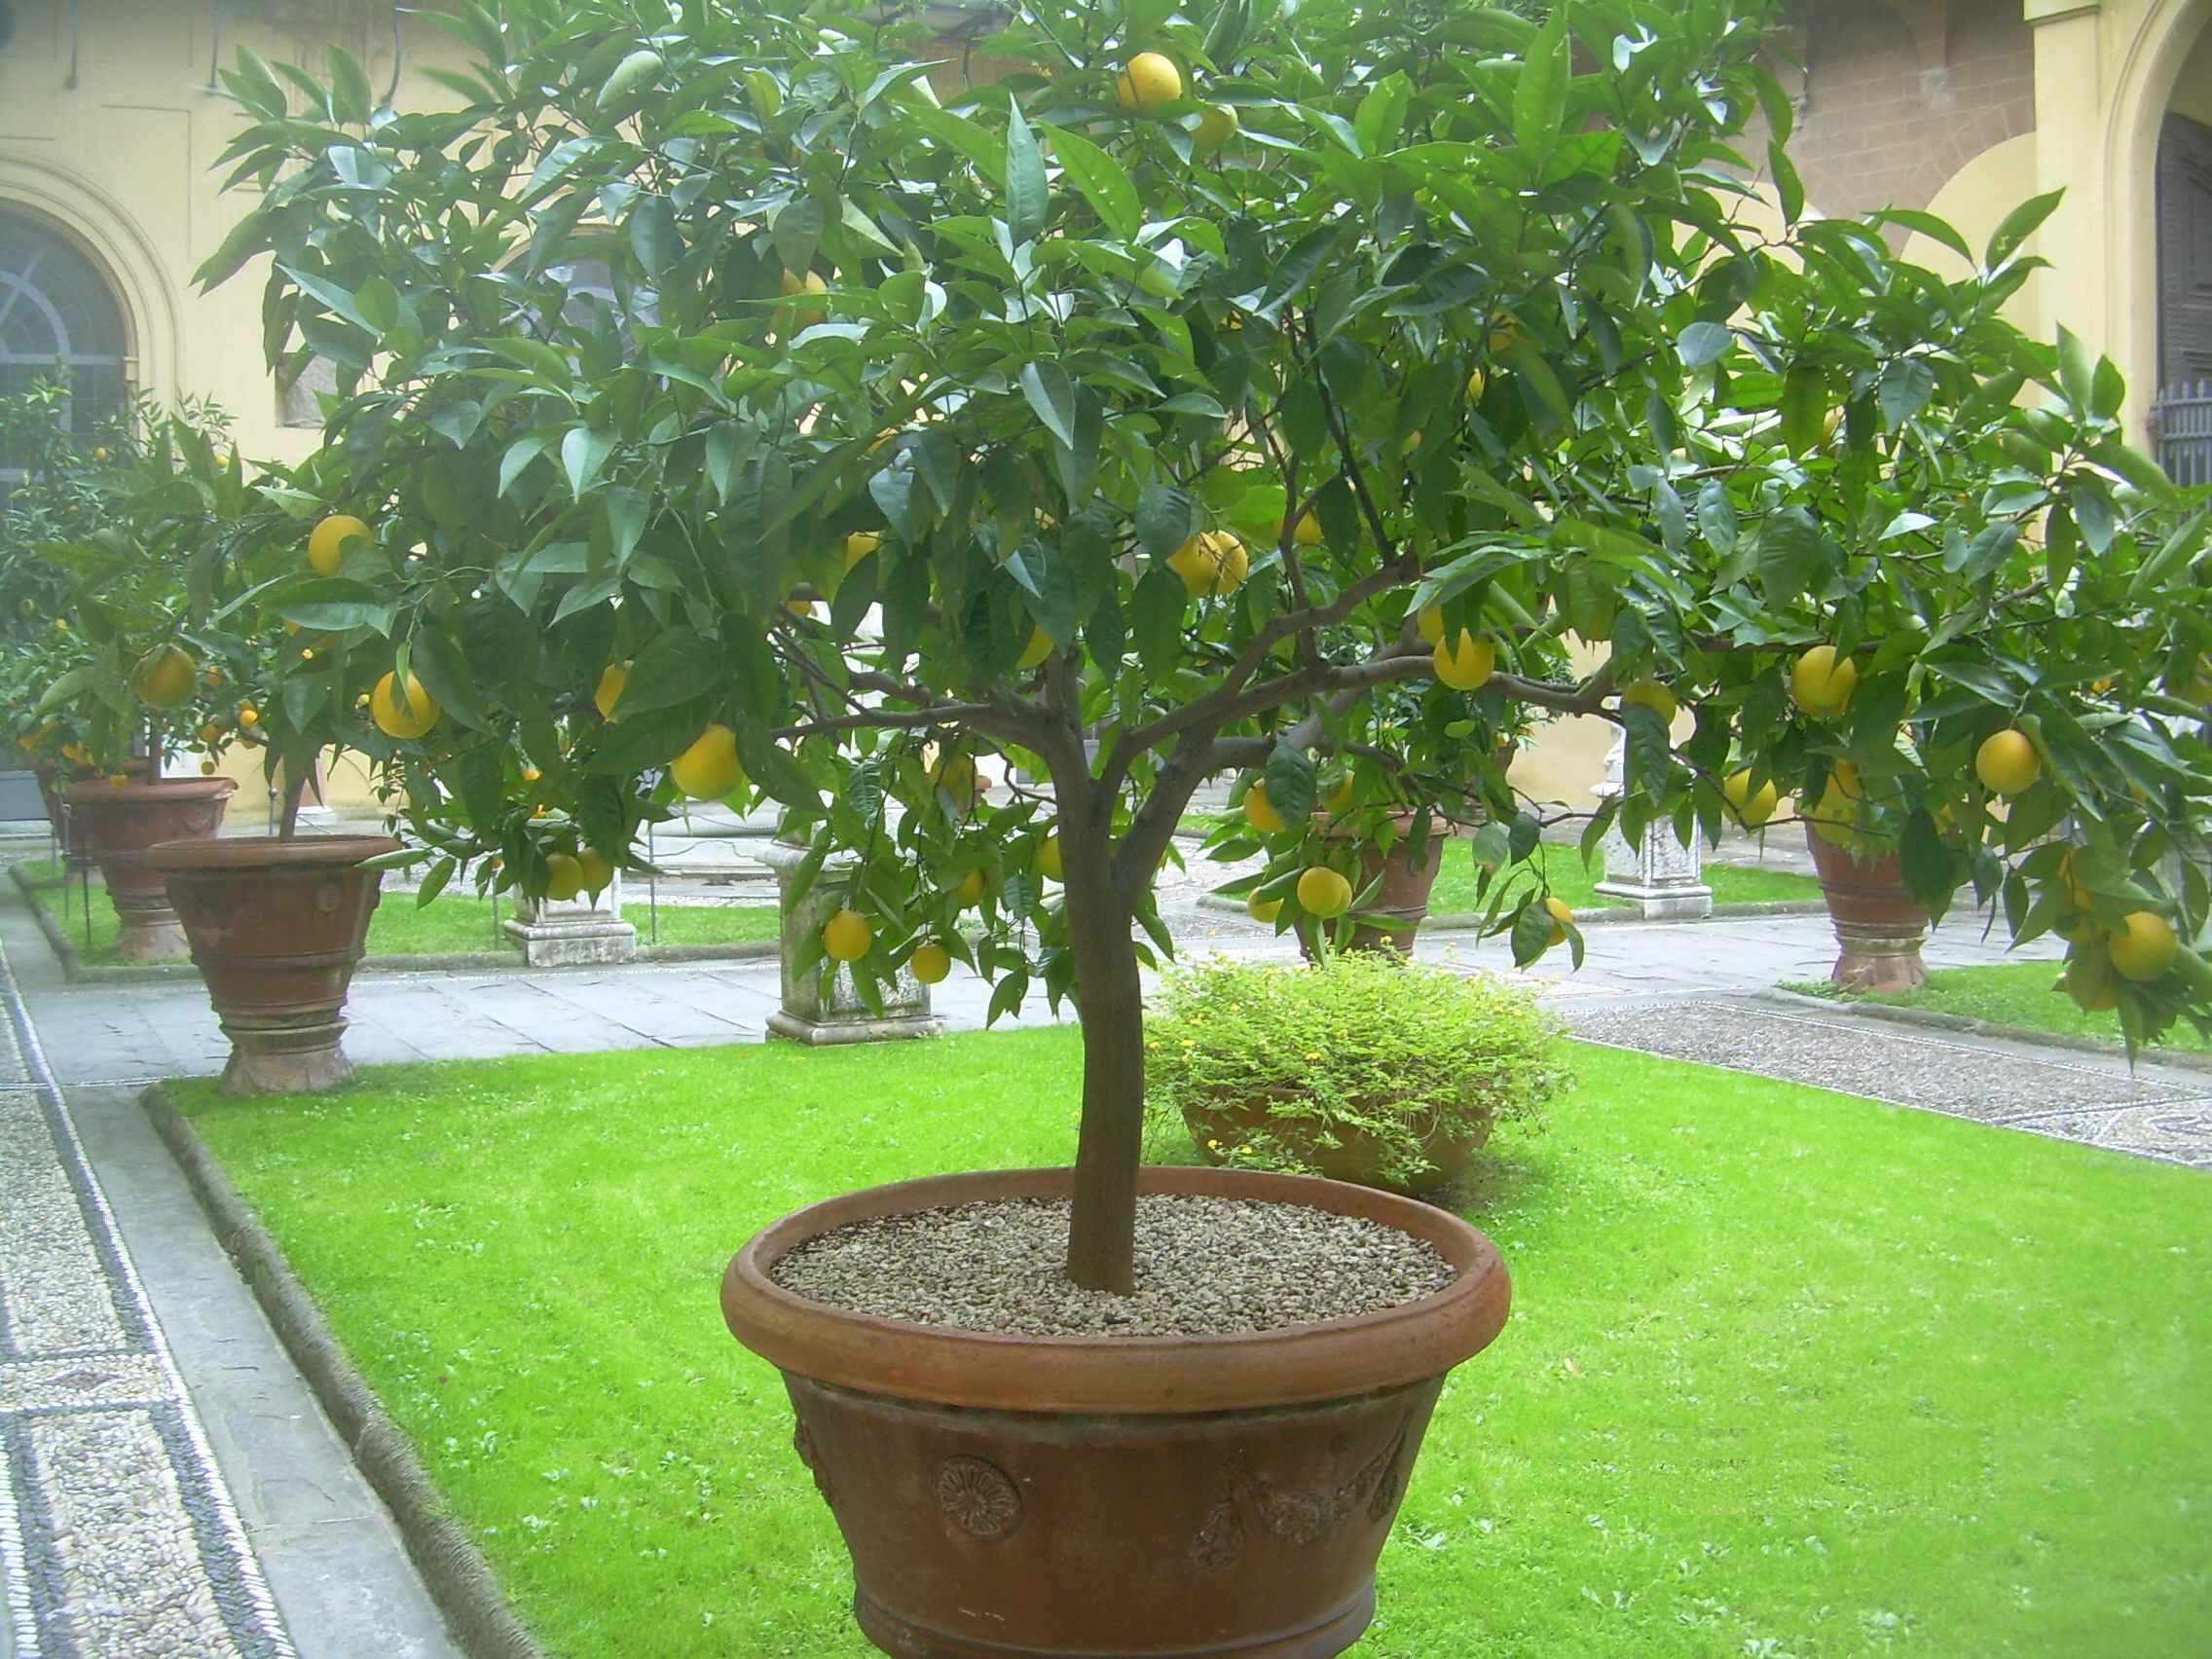 we had a kumquat tree in our apartment and it bore fruit